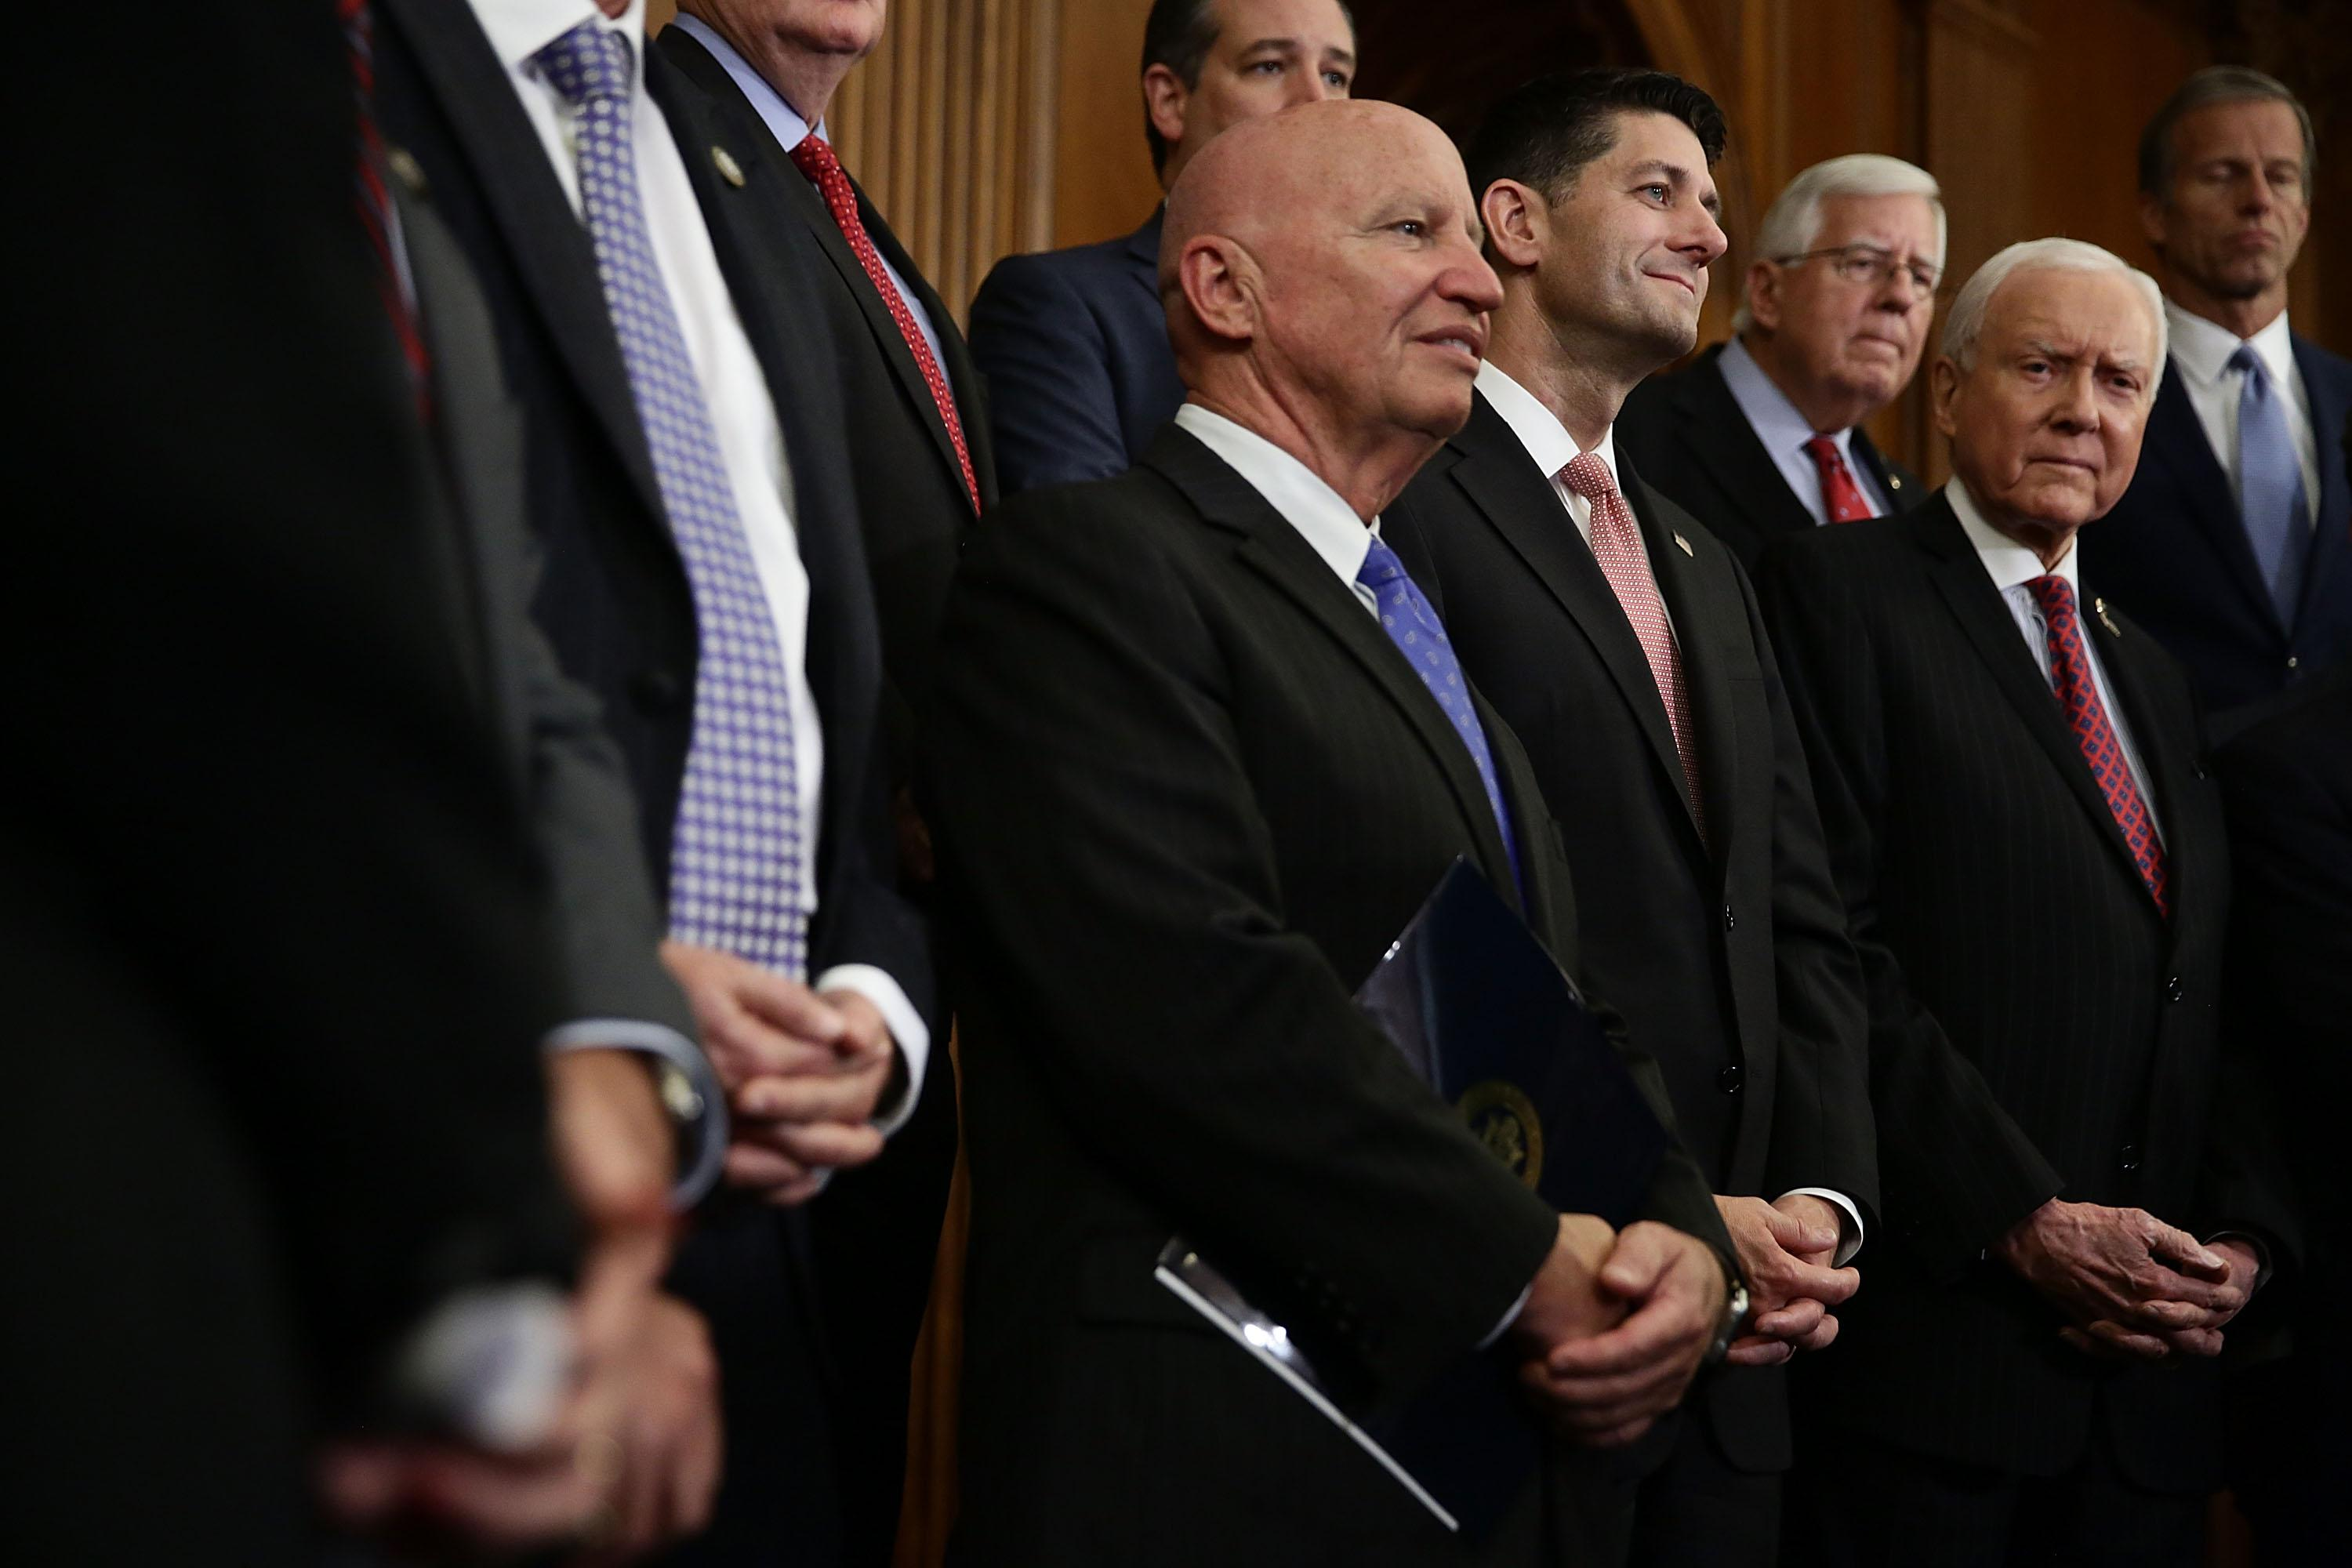 WASHINGTON, DC - SEPTEMBER 27:  (L-R) U.S. Rep. Kevin Brady (R-TX), Speaker of the House Rep. Paul Ryan (R-WI), Sen. Orrin Hatch (R-UT), Sen. Michael Enzi (R-WY) and Sen. John Thune (R-SD) listen         during a press event on tax reform September 27, 2017 at the Capitol in Washington, DC. On Wednesday, Republican leaders proposed cutting tax rates for the middle class, wealthy and businesses. Key questions remain on how they plan to offset the trillions of dollars in lost tax revenue.Ê  (Photo by Alex Wong/Getty Images)